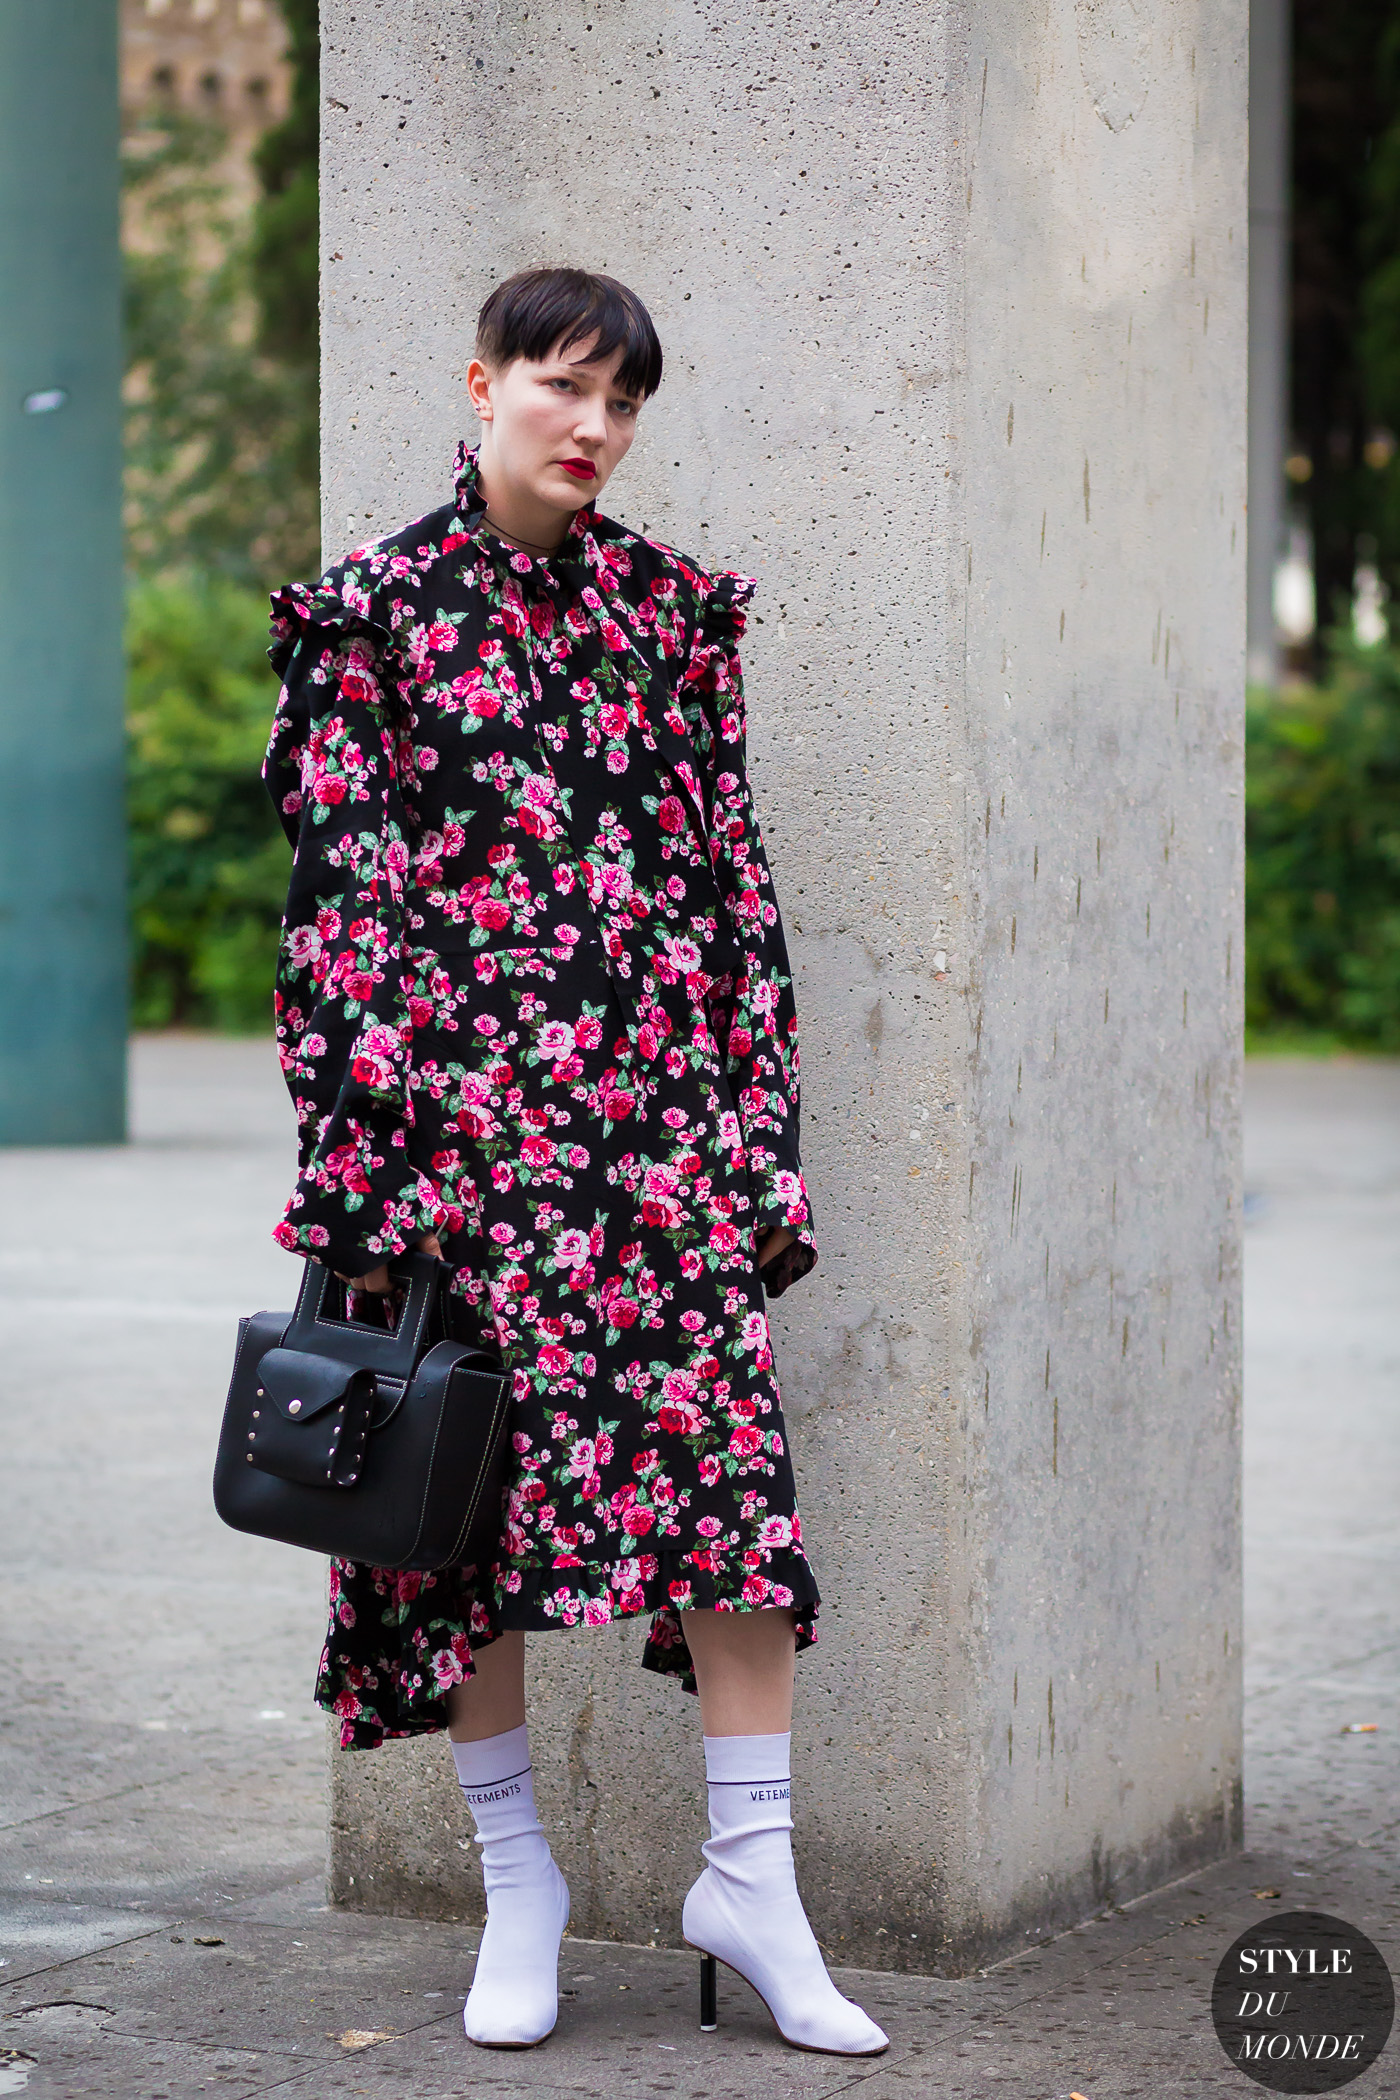 Lotta Volkova Street Style Street Fashion Streetsnaps by STYLEDUMONDE Street Style Fashion Photography